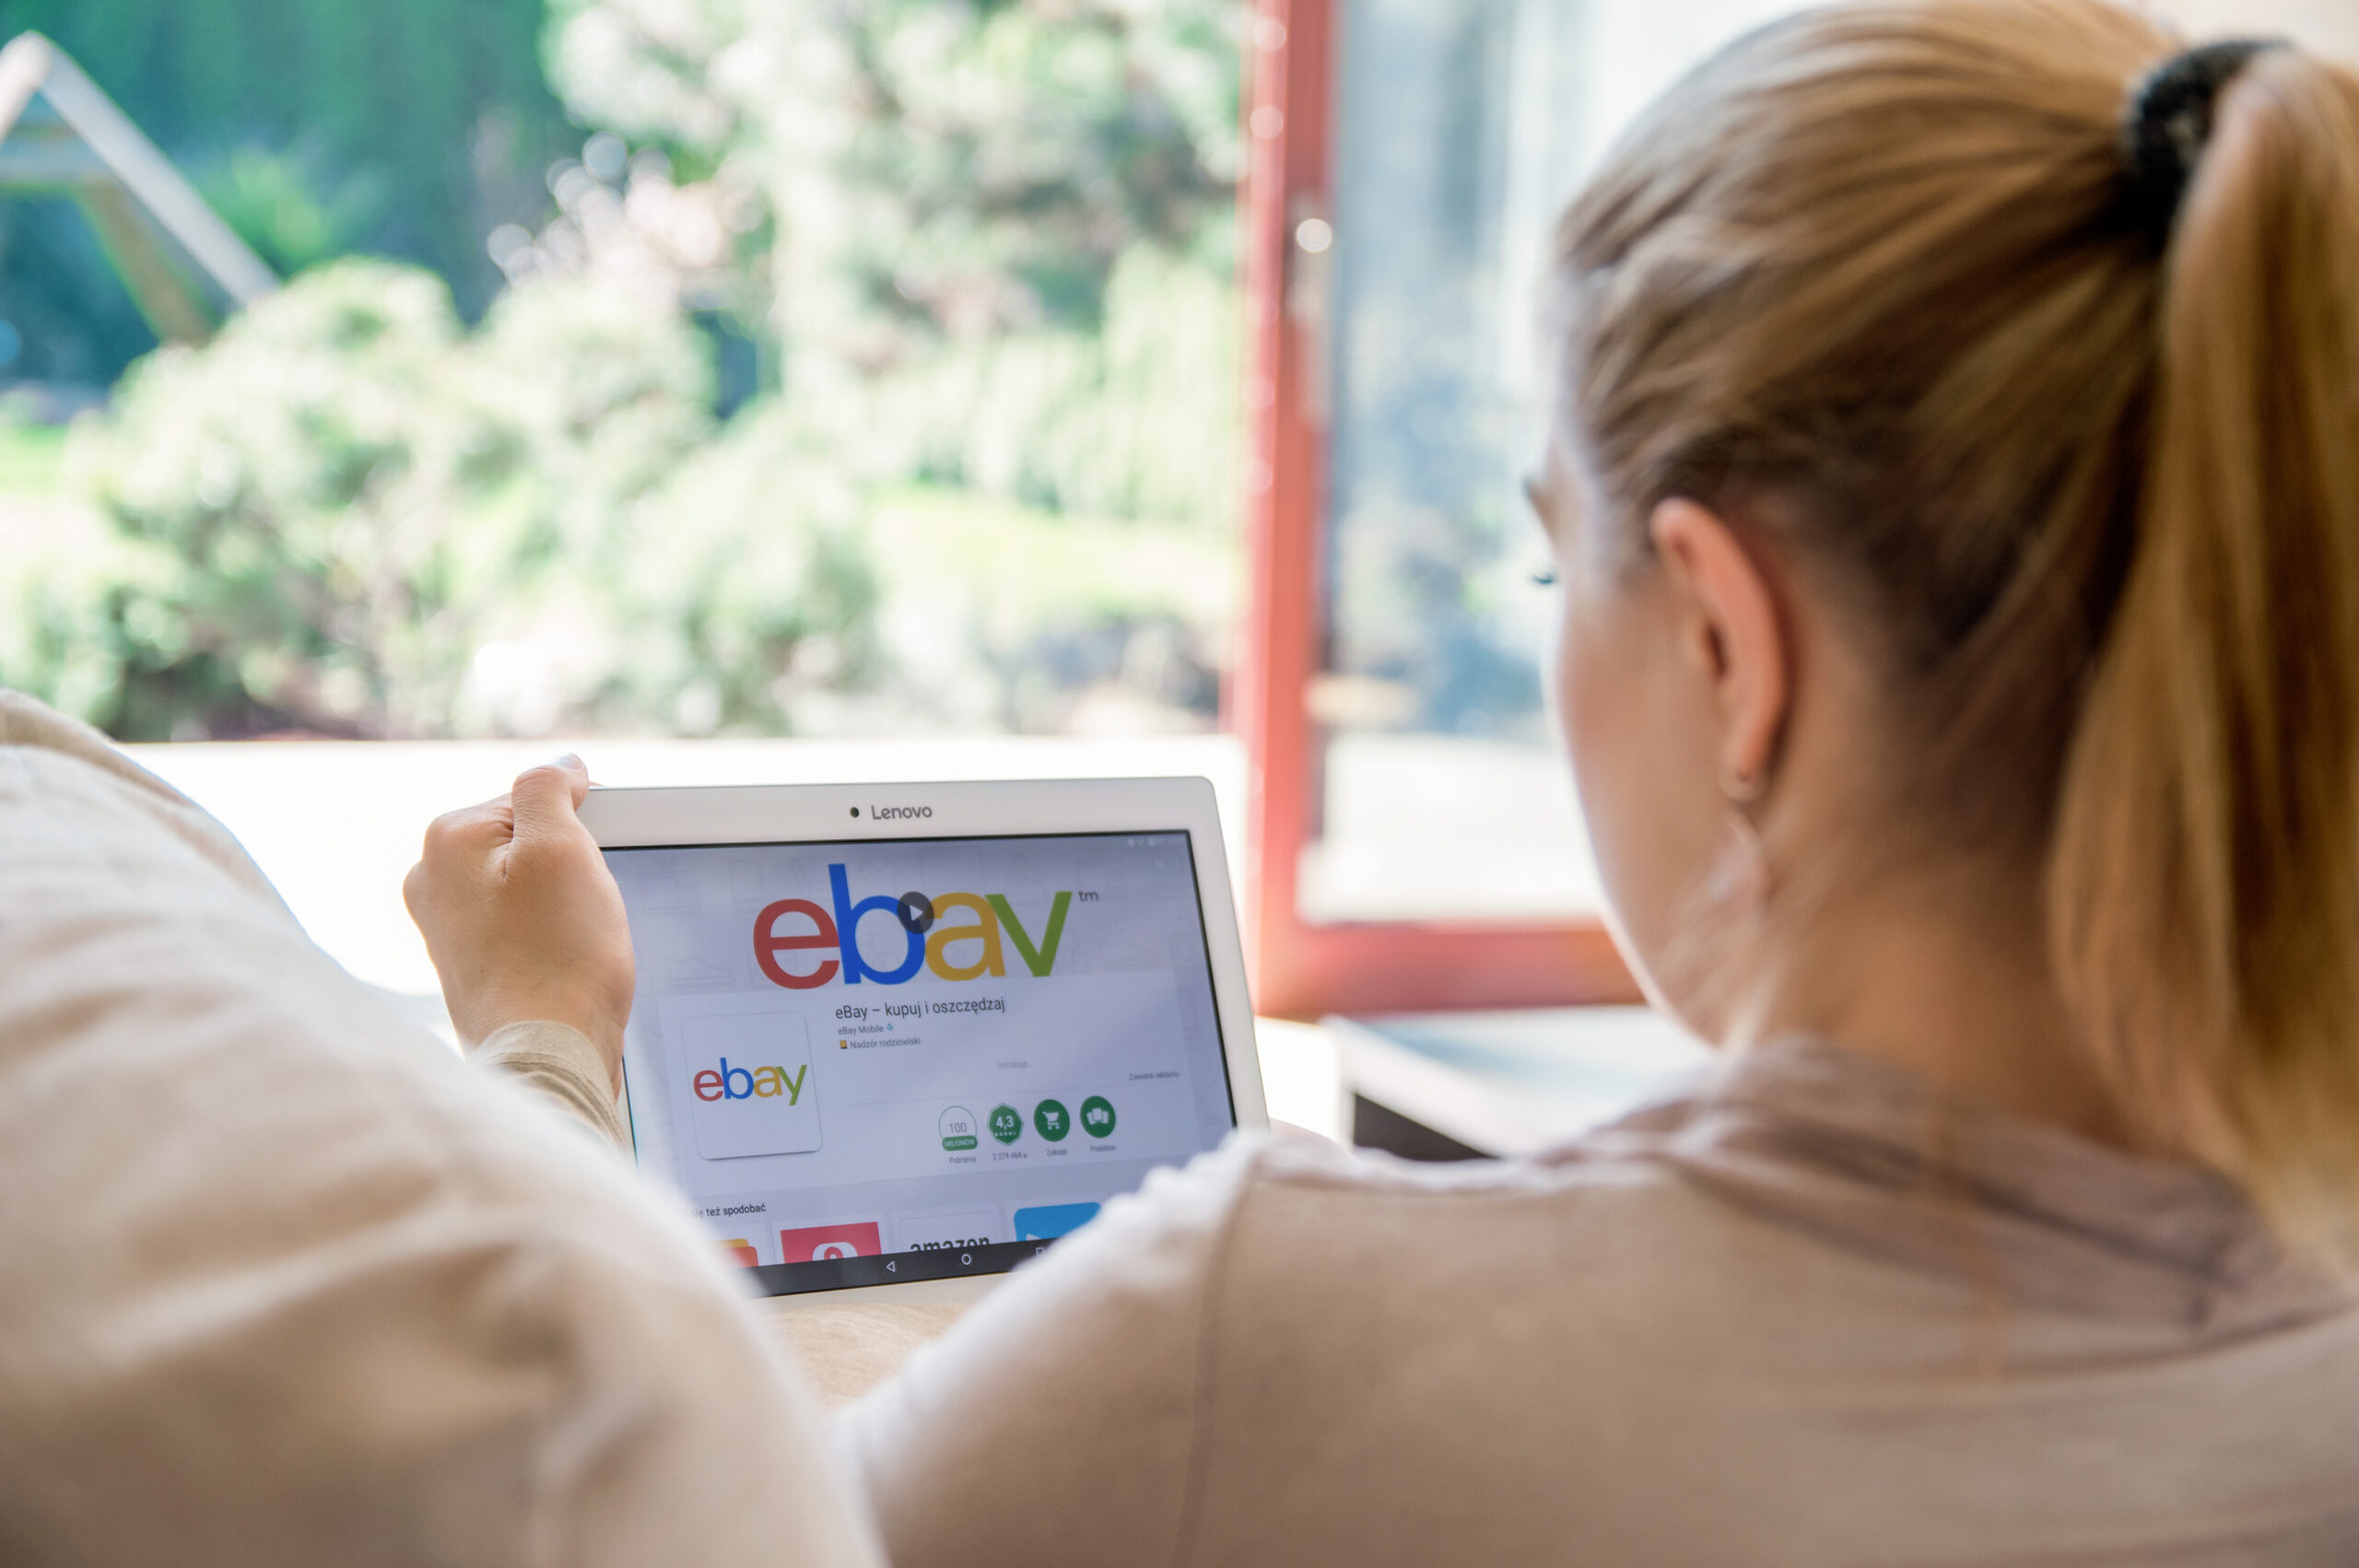 A woman looking at eBay on a computer tablet